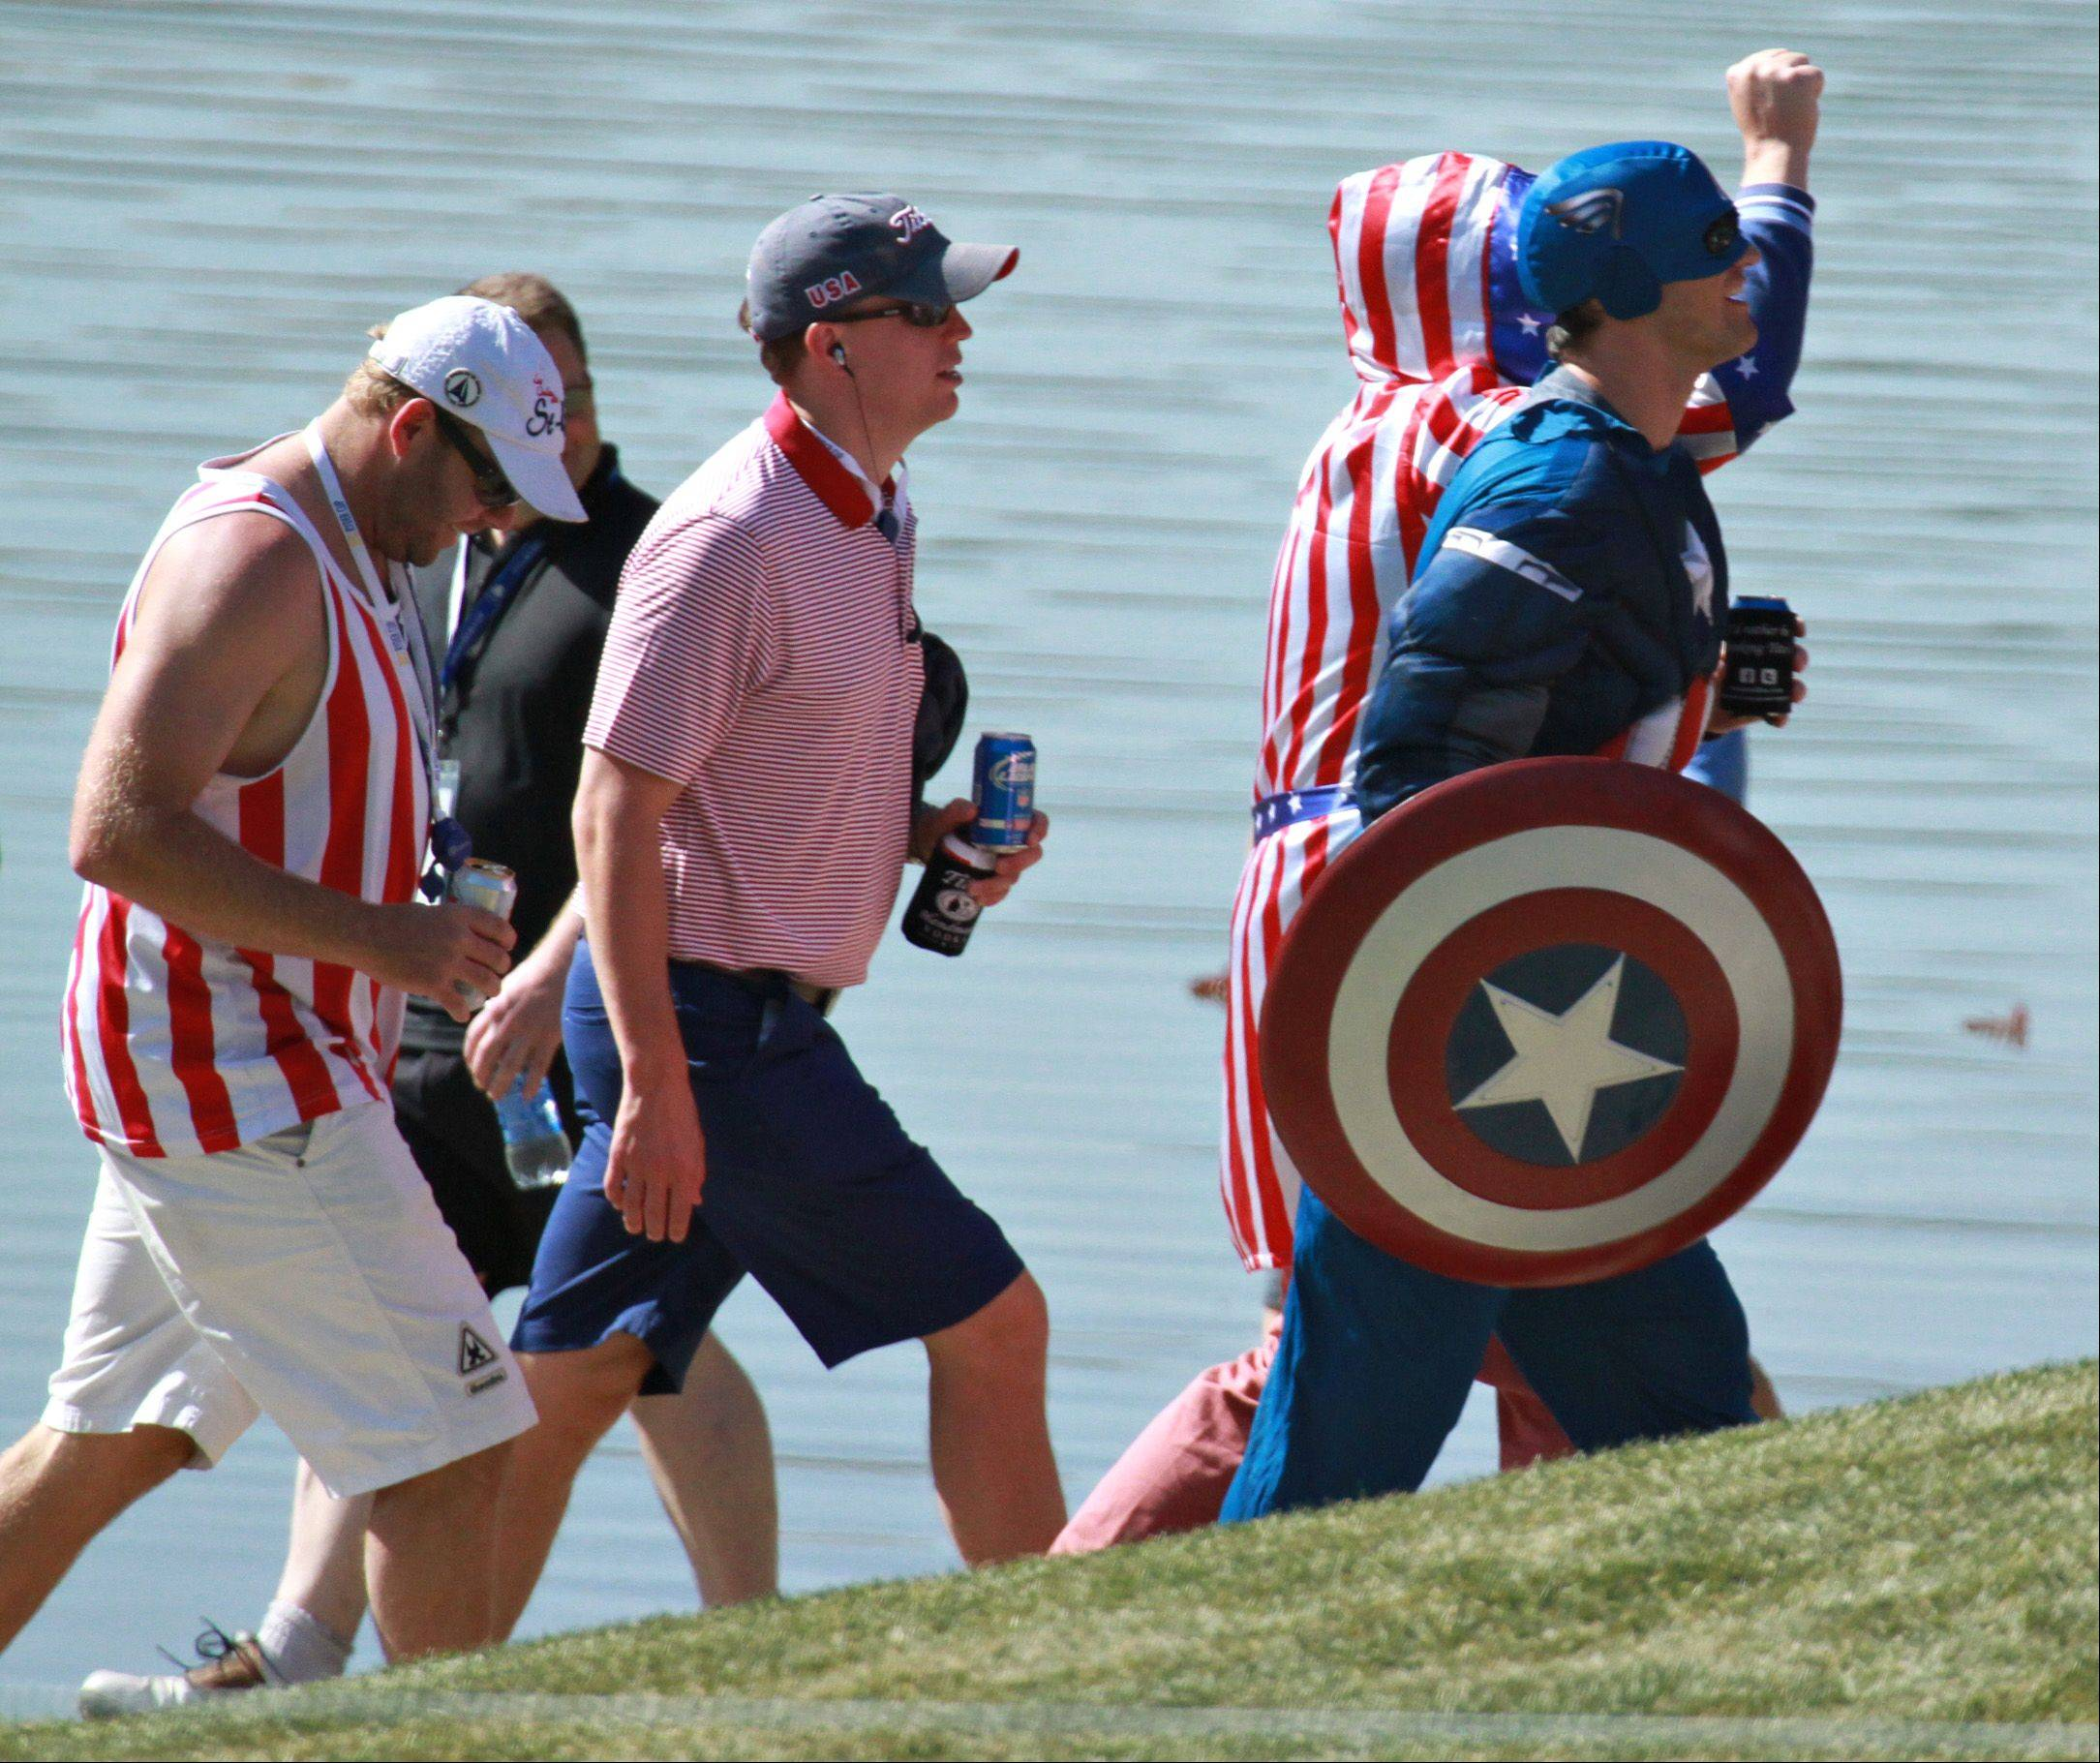 Captain America and some other red, white and blue fans make their way from hole to hole watching the golf action Saturday.